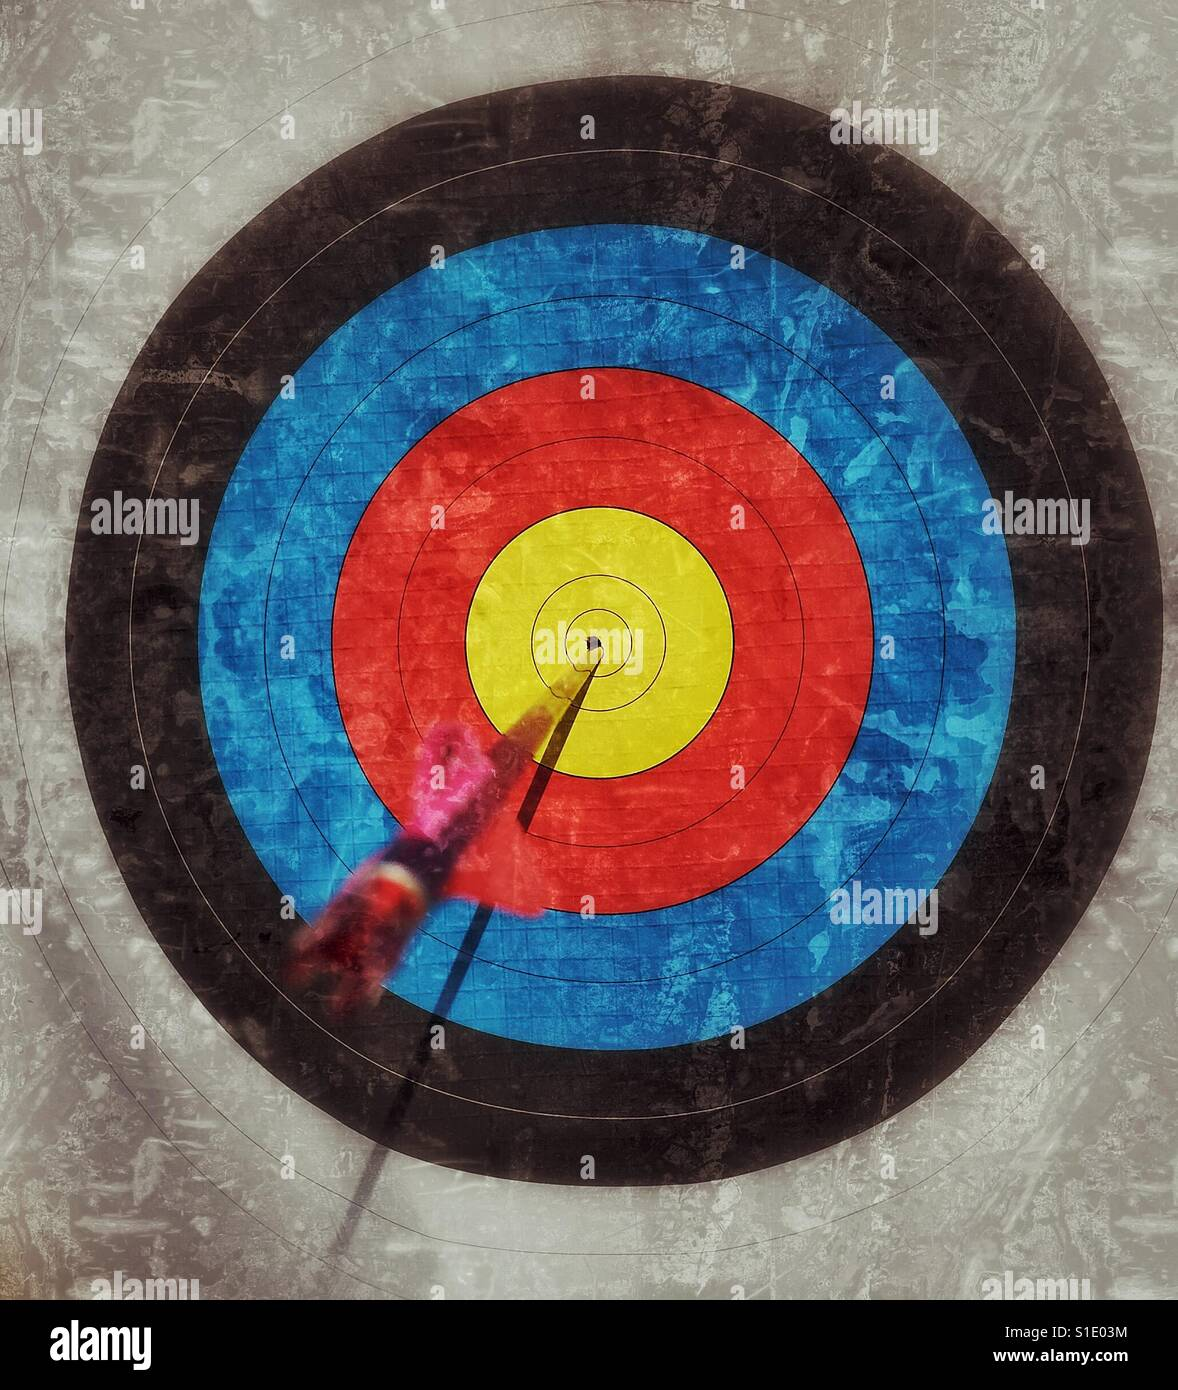 BULLSEYE! The perfect archery shot. A grunge effect image of an arrow in the dead centre of an archery target. Photo - Stock Image